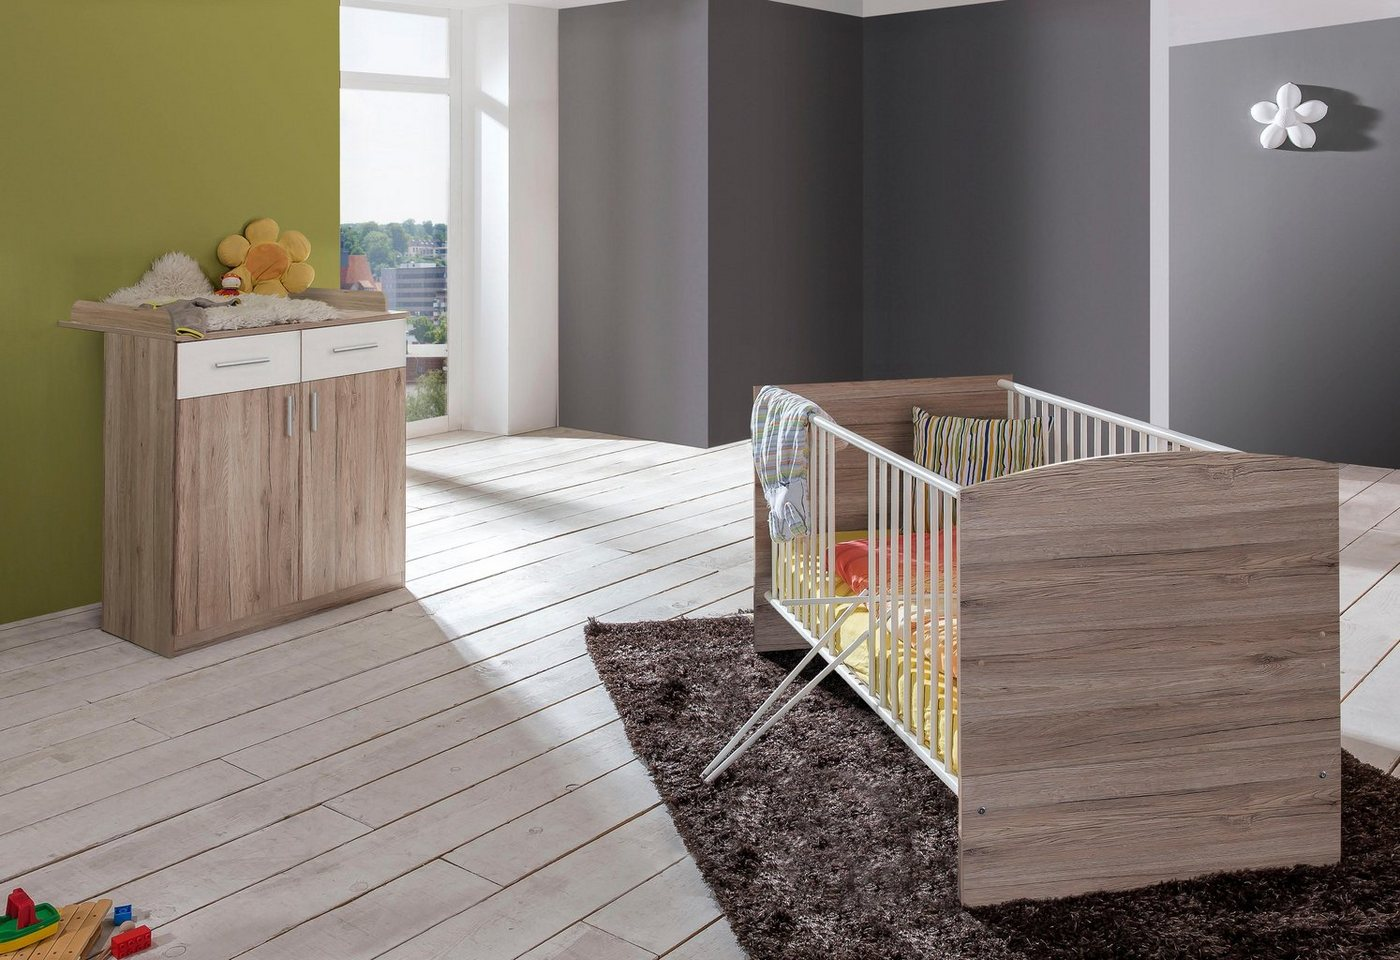 Babymöbel-Set »York«, (2 tlg) Bett + Wickelkommode